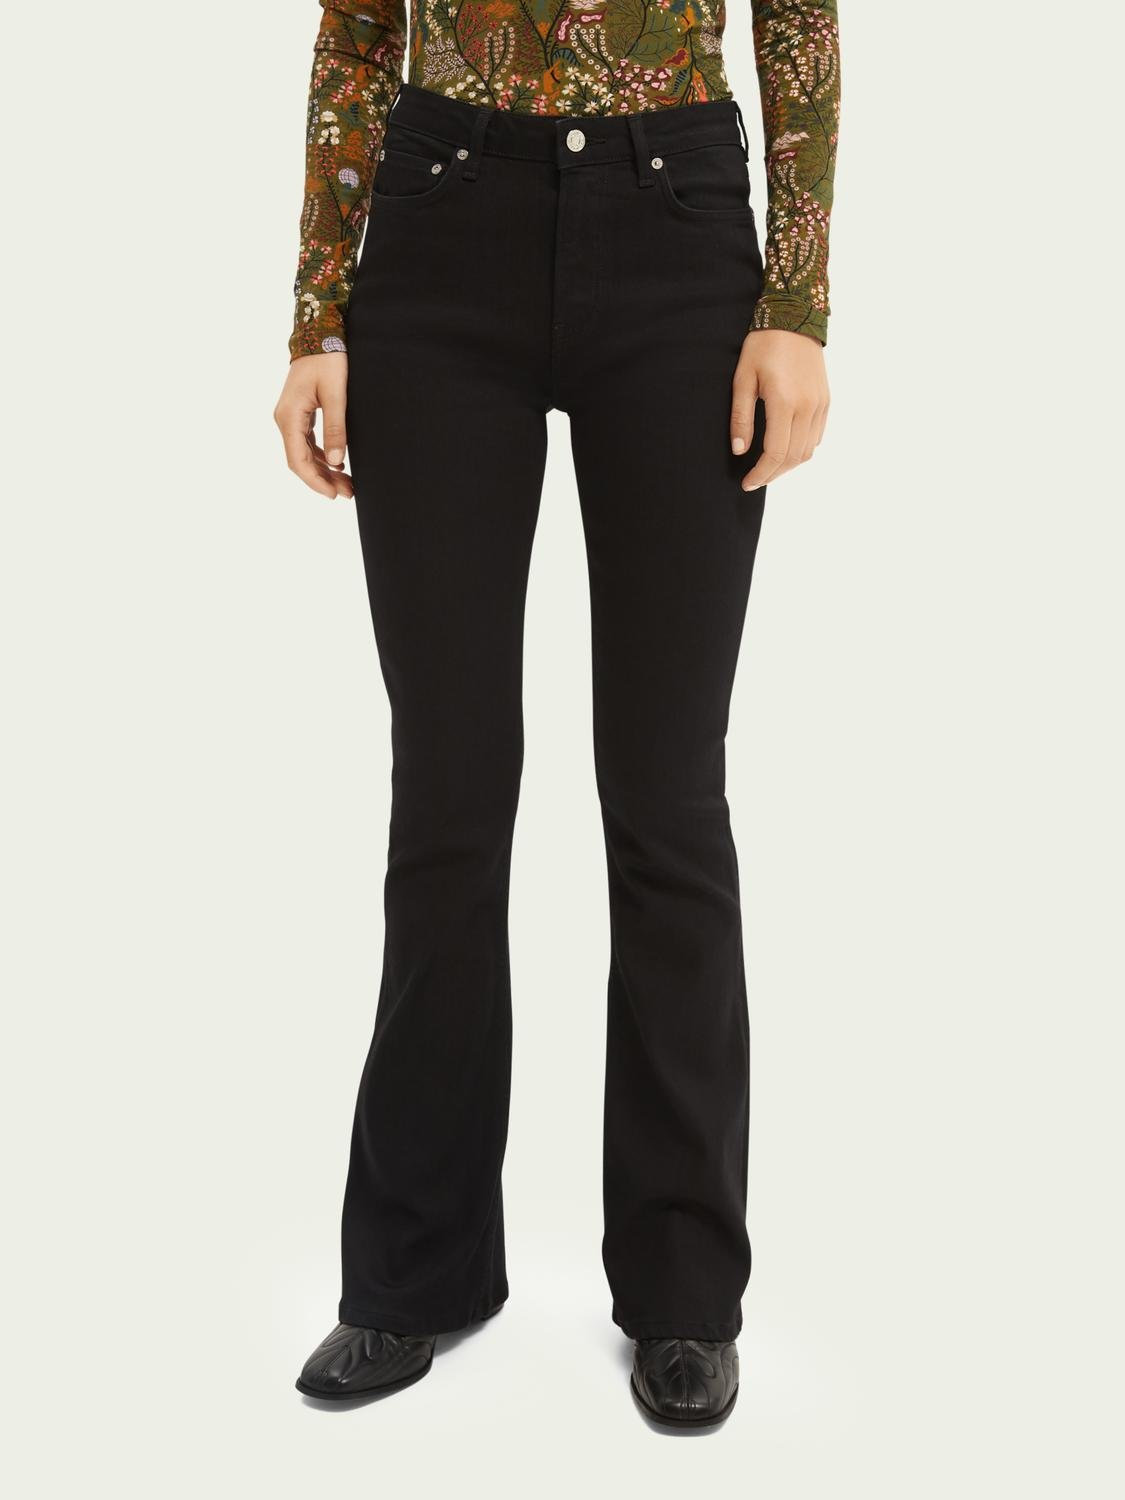 The Charm high-rise flared jeans —Think Different